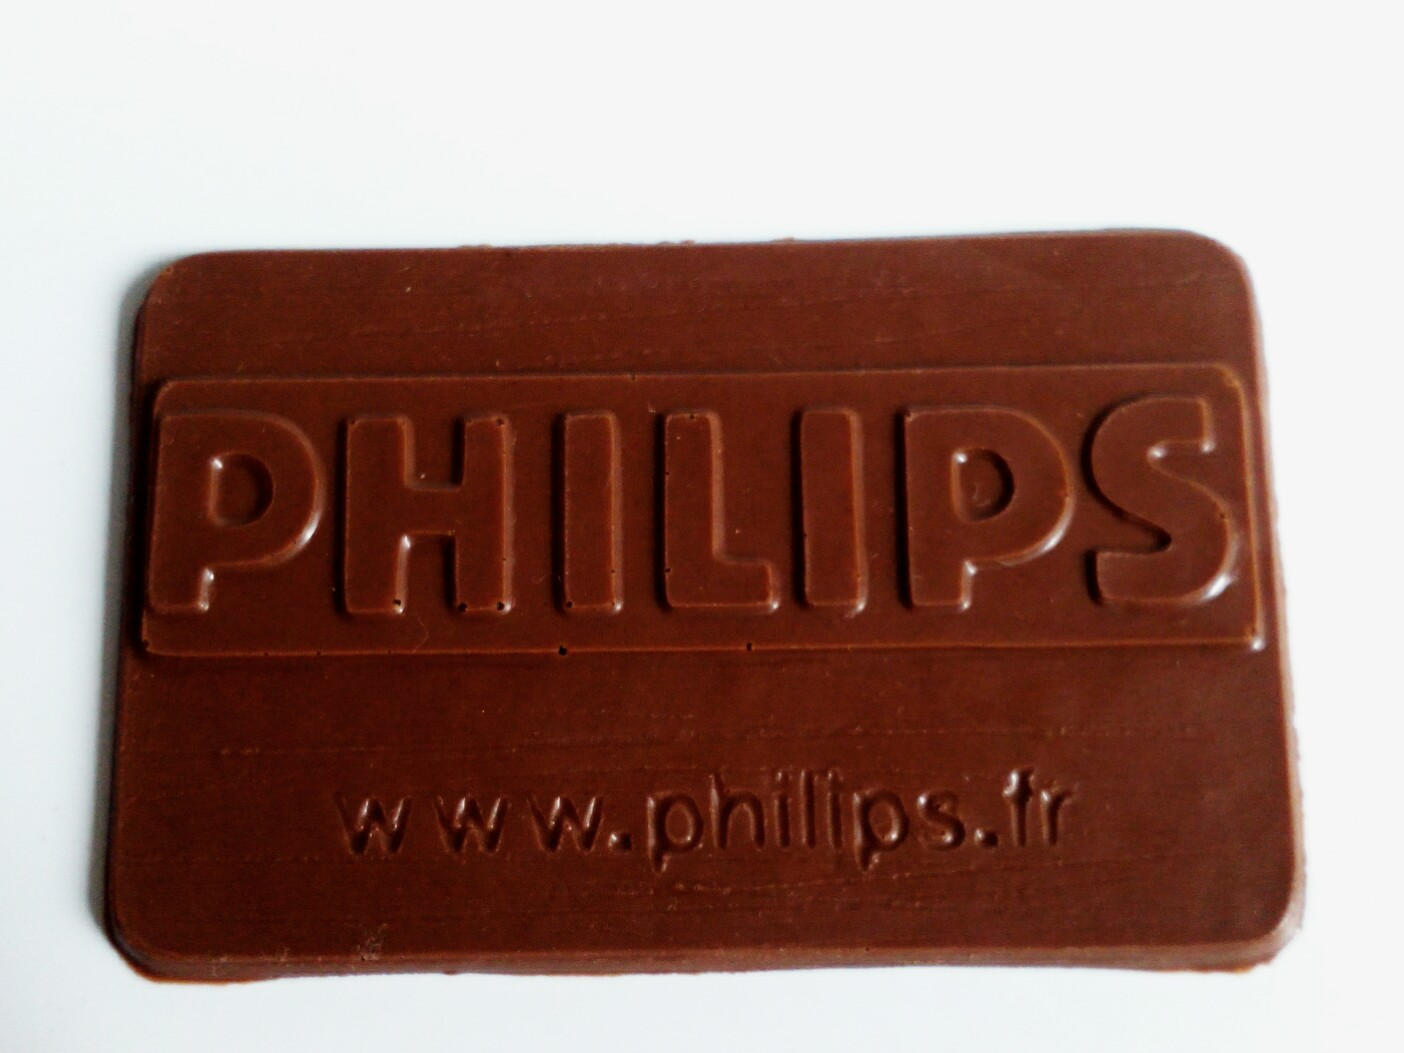 philips_chocolate